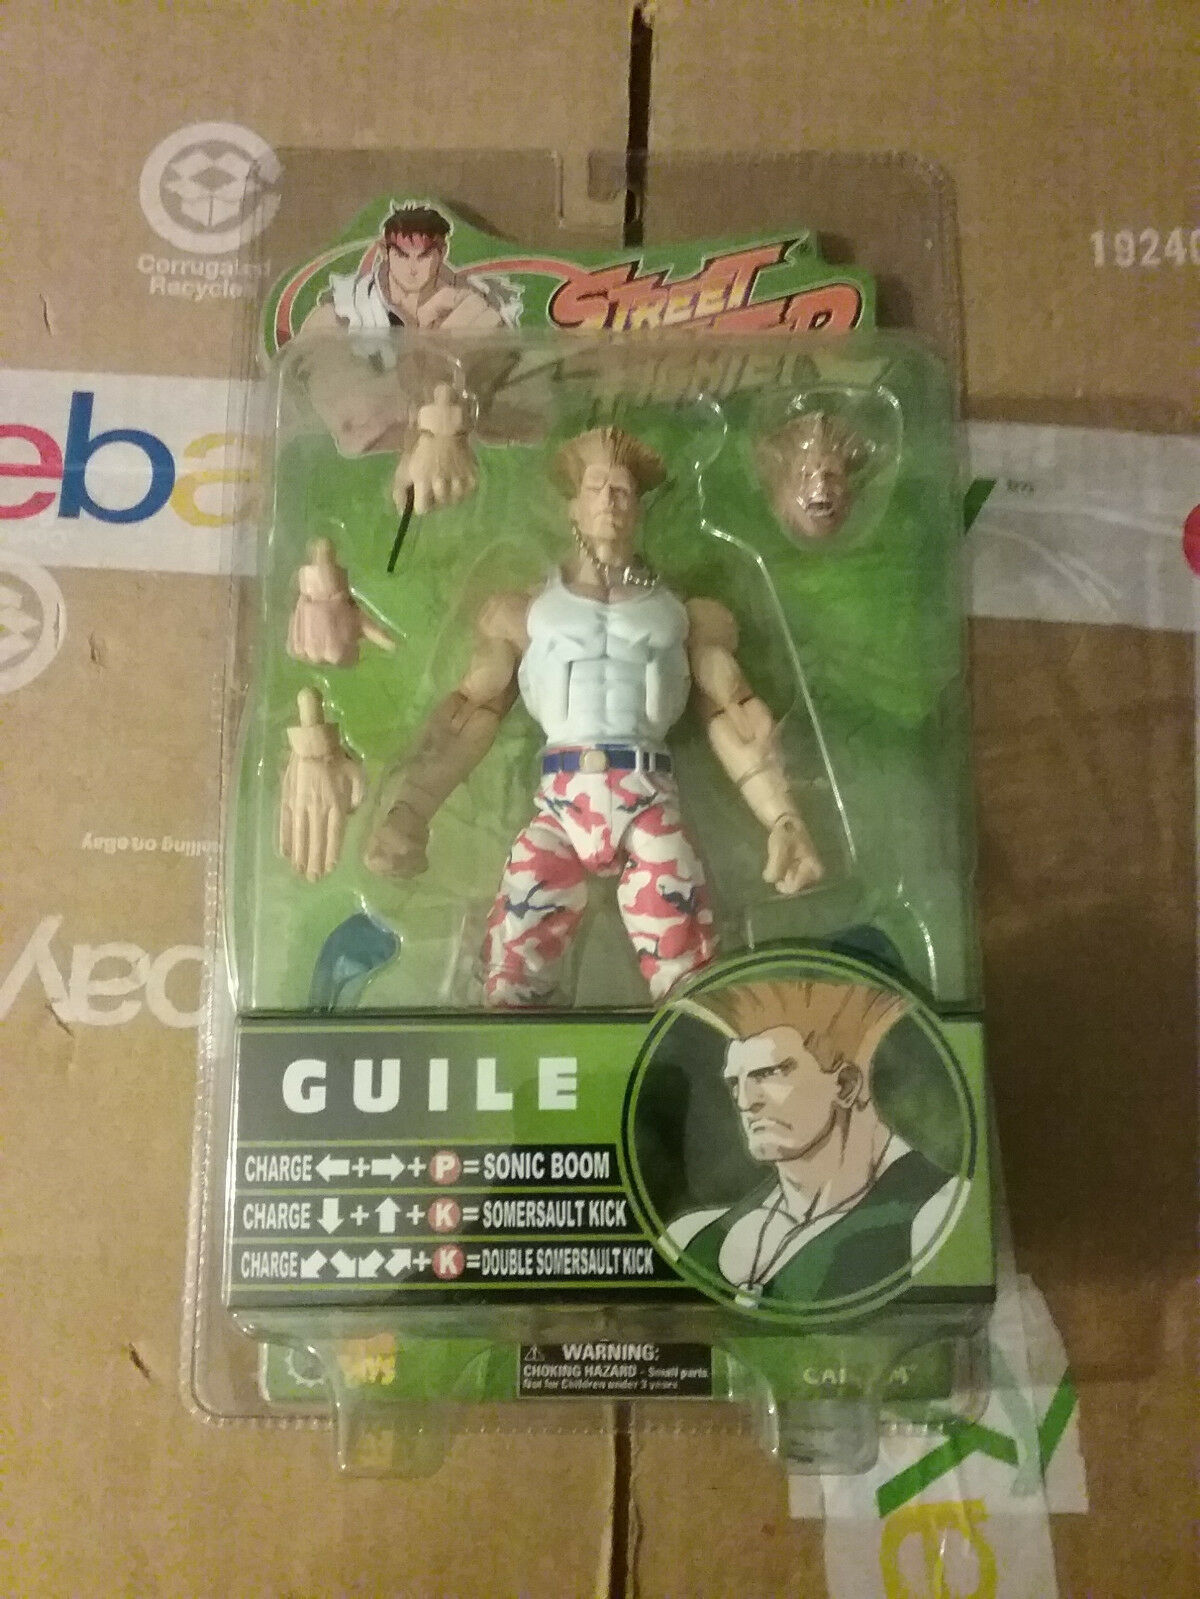 SOTA Street Fighter Fighter Fighter RD 3  USA Camo Ex  Guile  Figure New fec4d6